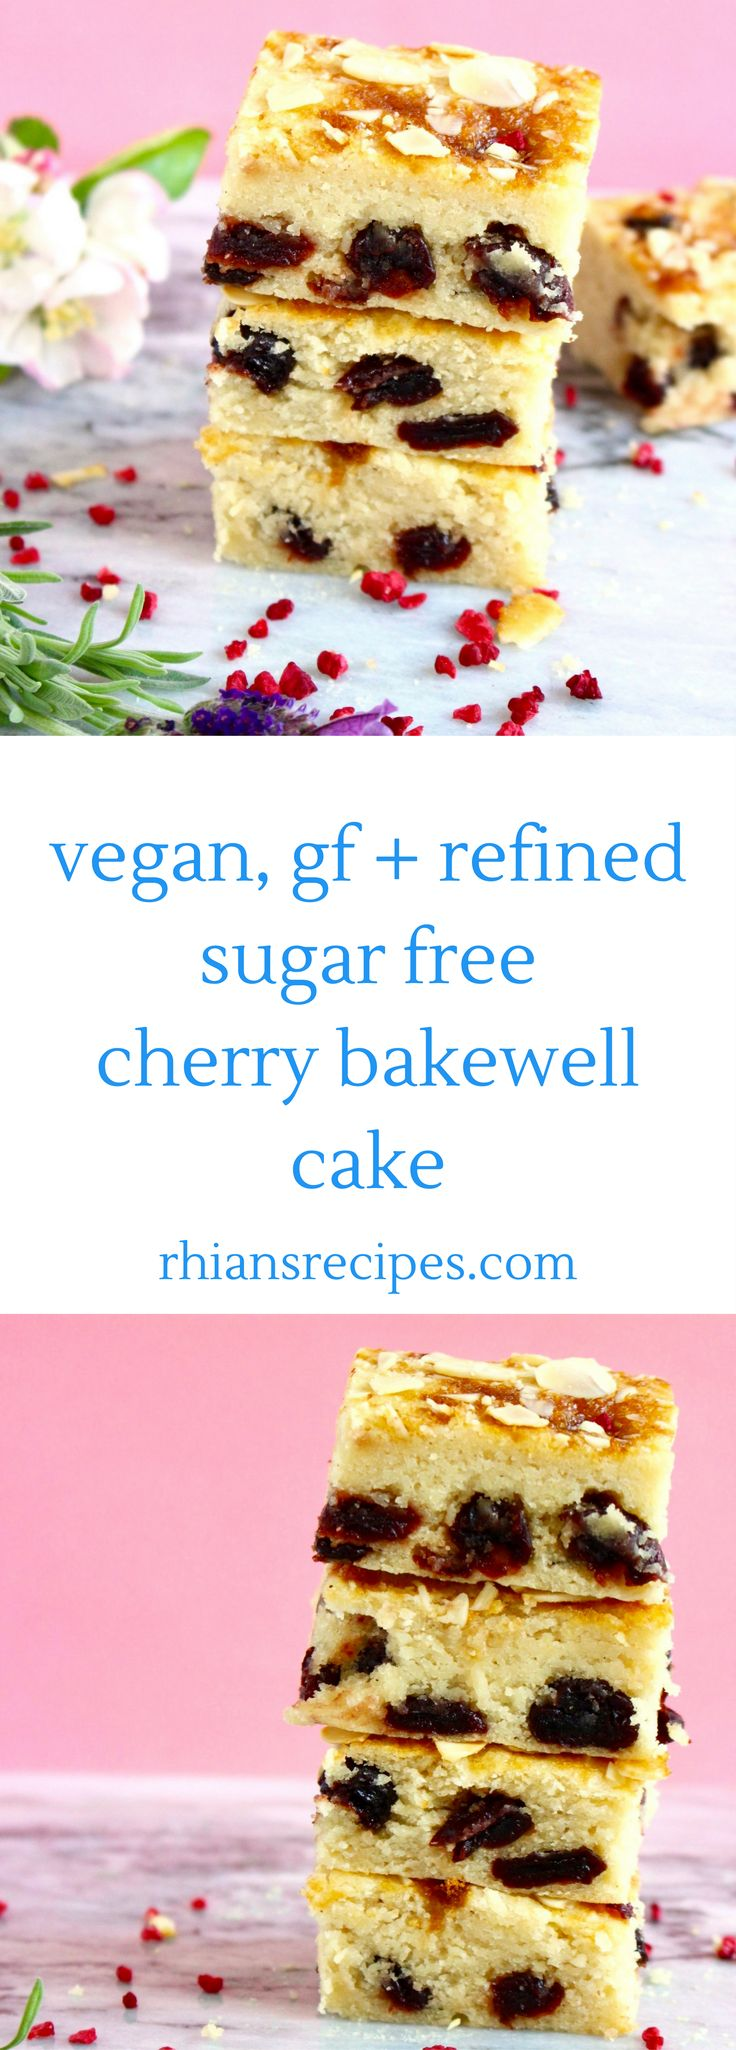 This Gluten-Free Vegan Cherry Bakewell Cake is easy to make, tastes every bit as delicious as the traditional version, and is surprisingly healthy! Also refined sugar free.